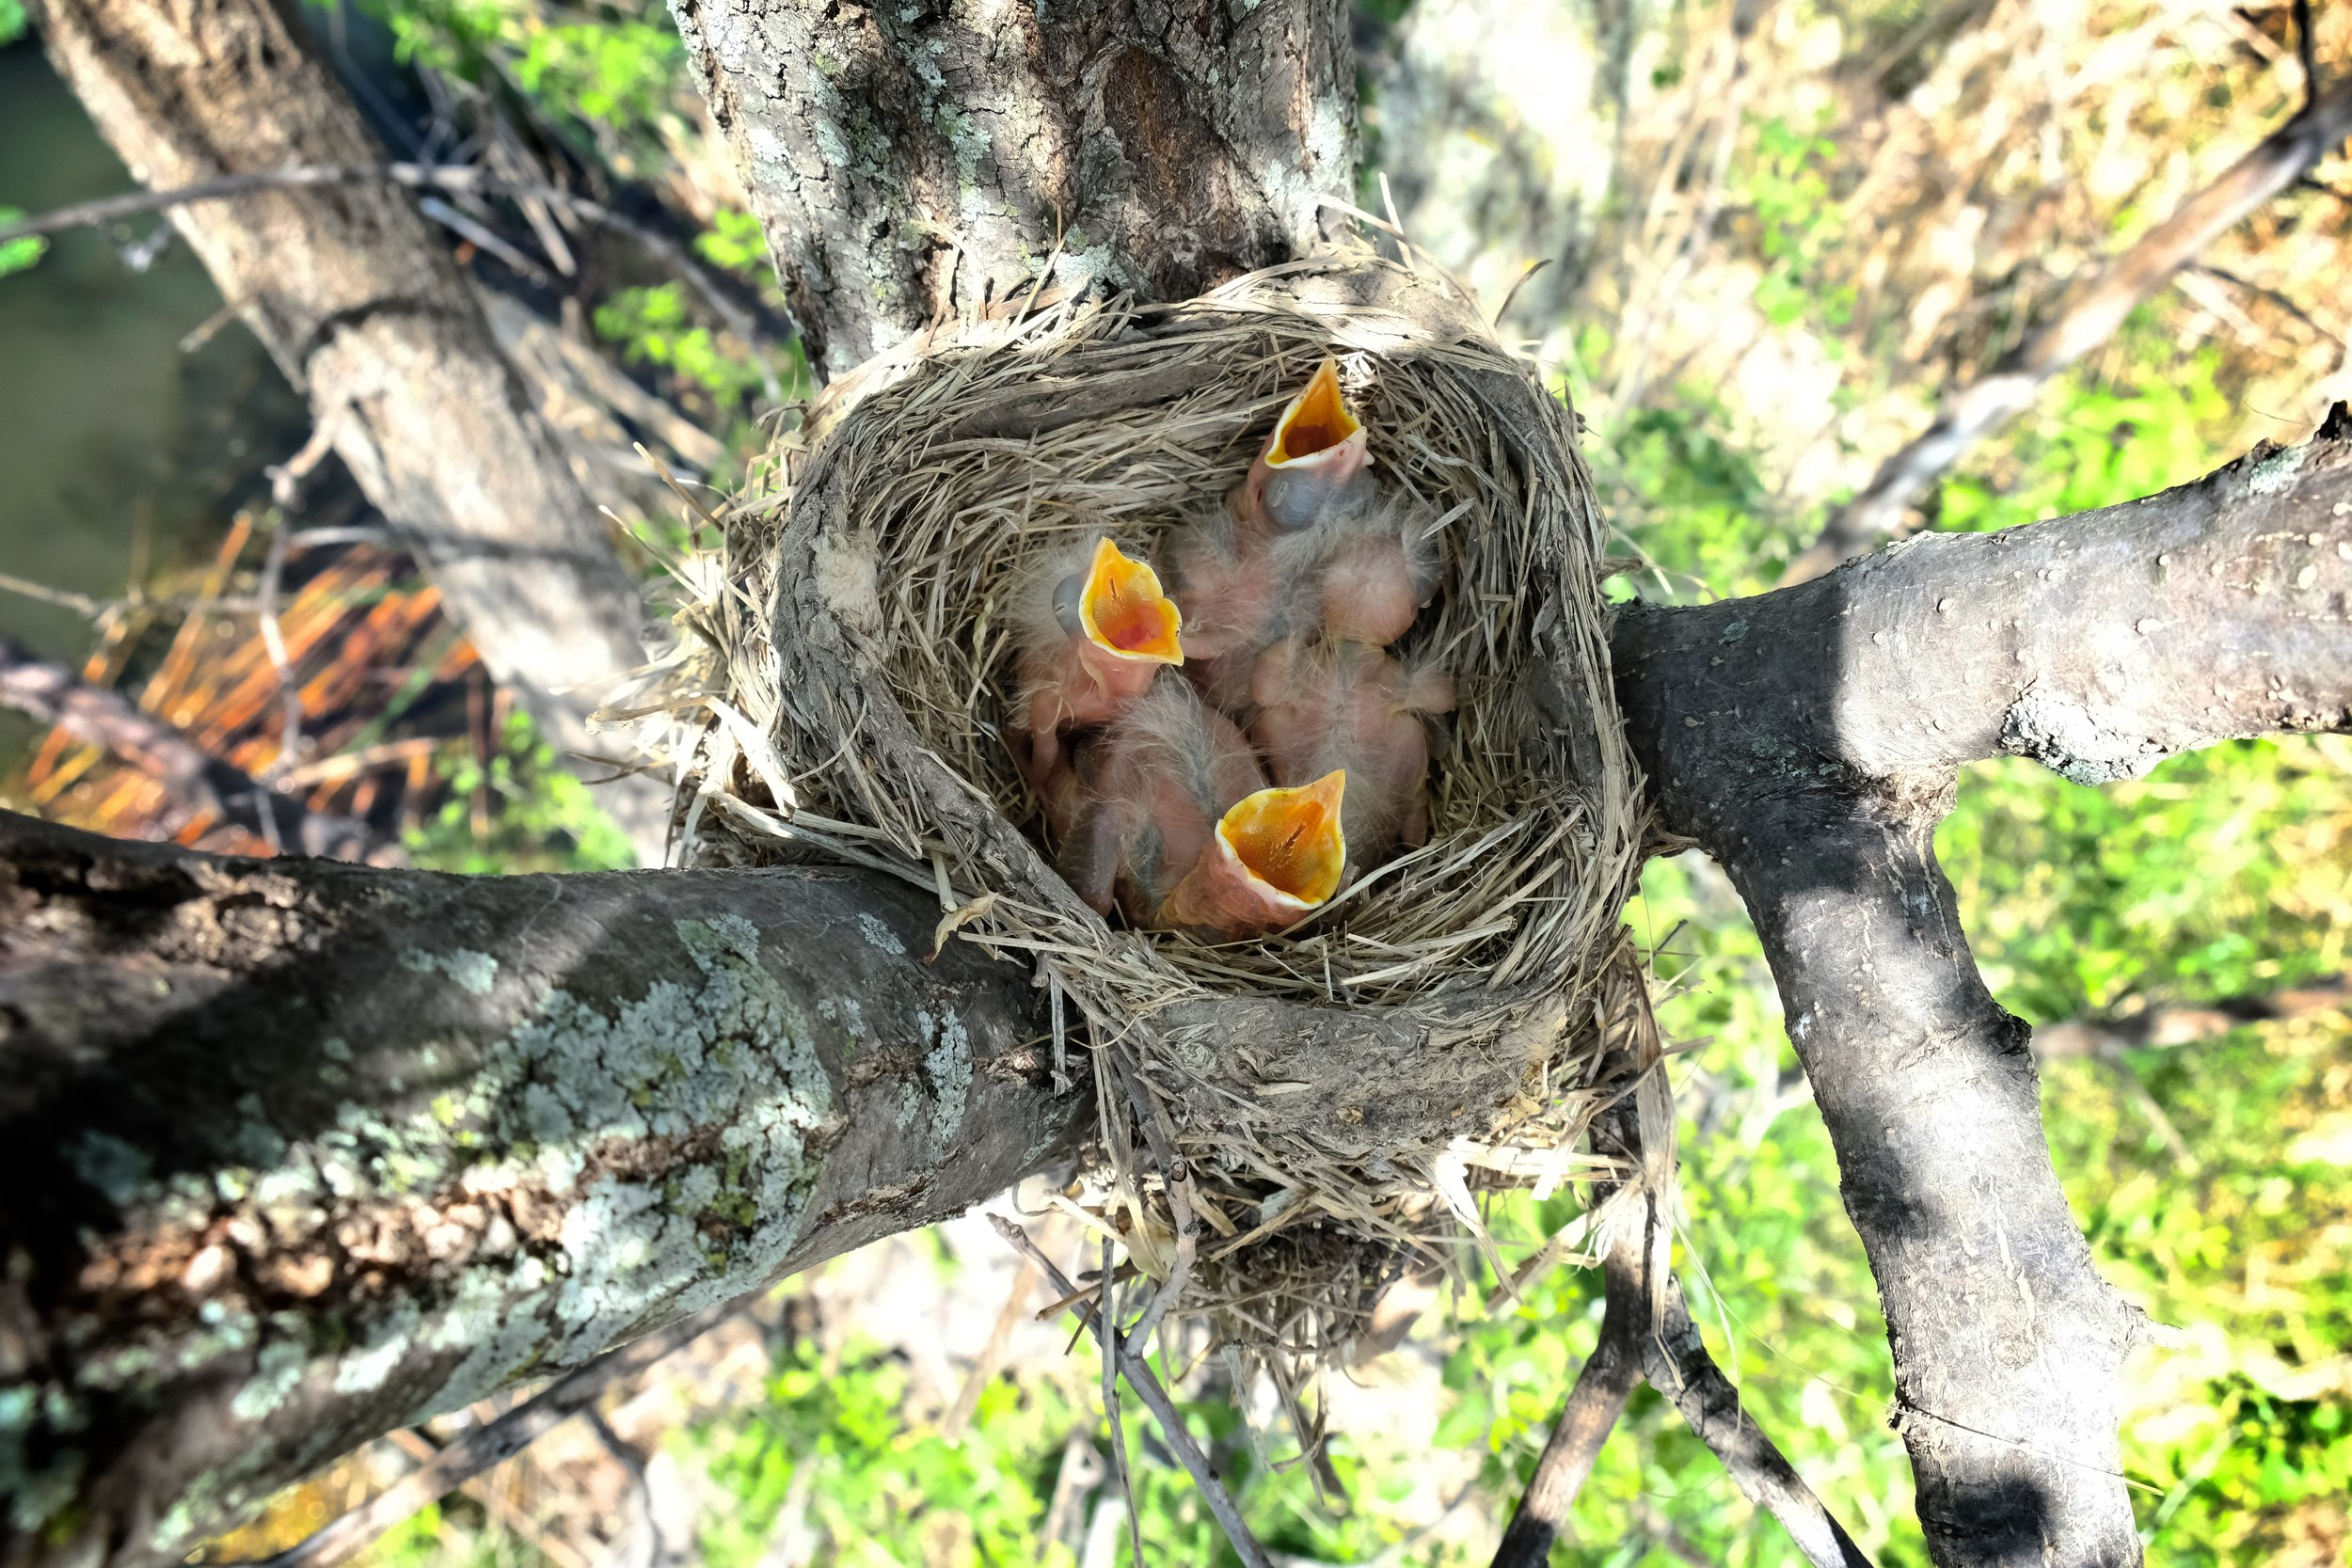 Four young robins in their nest. Click on the image for more photos.